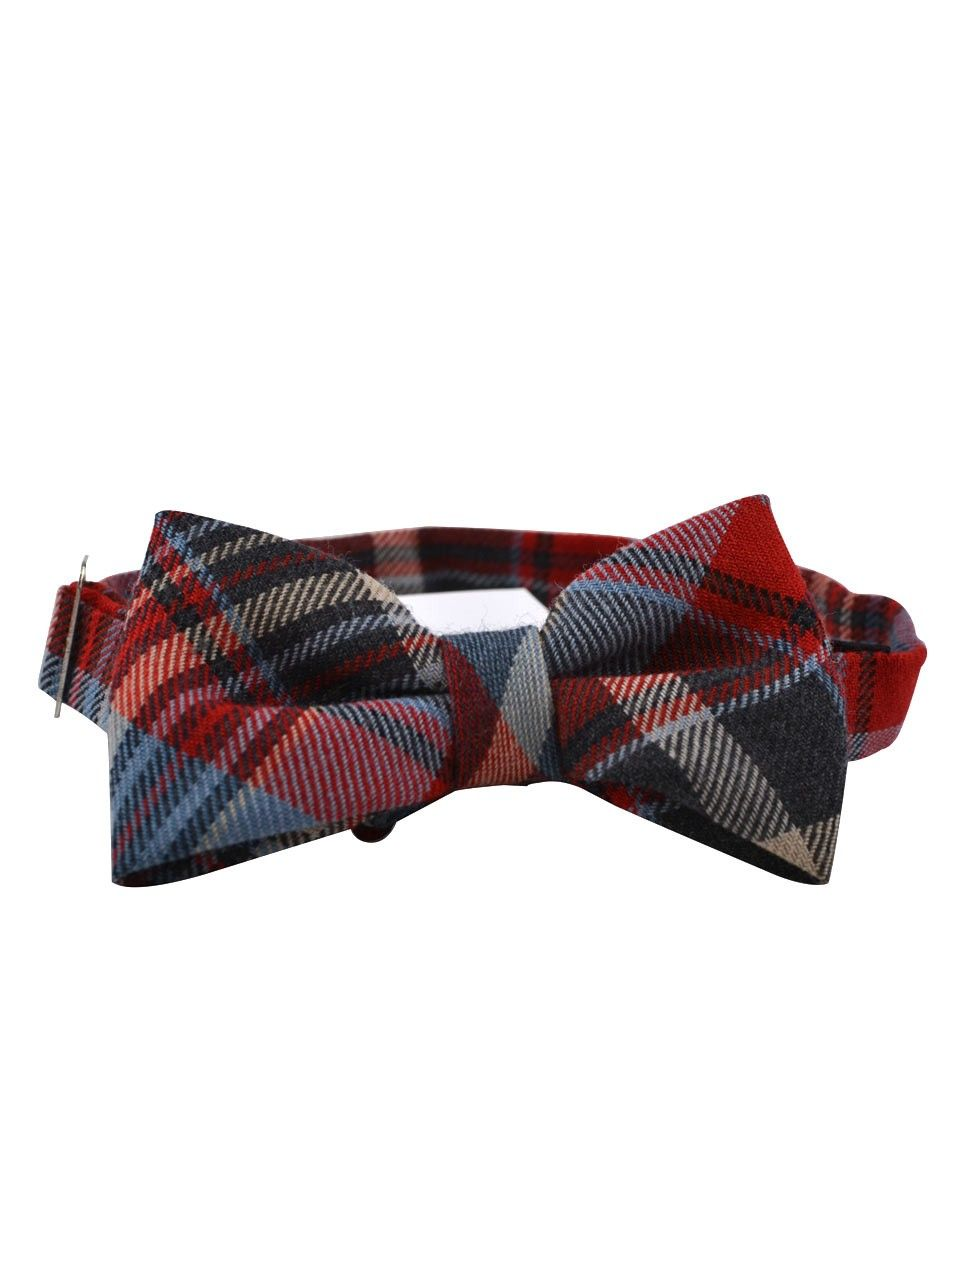 Checked bow tie for boys from Simonetta